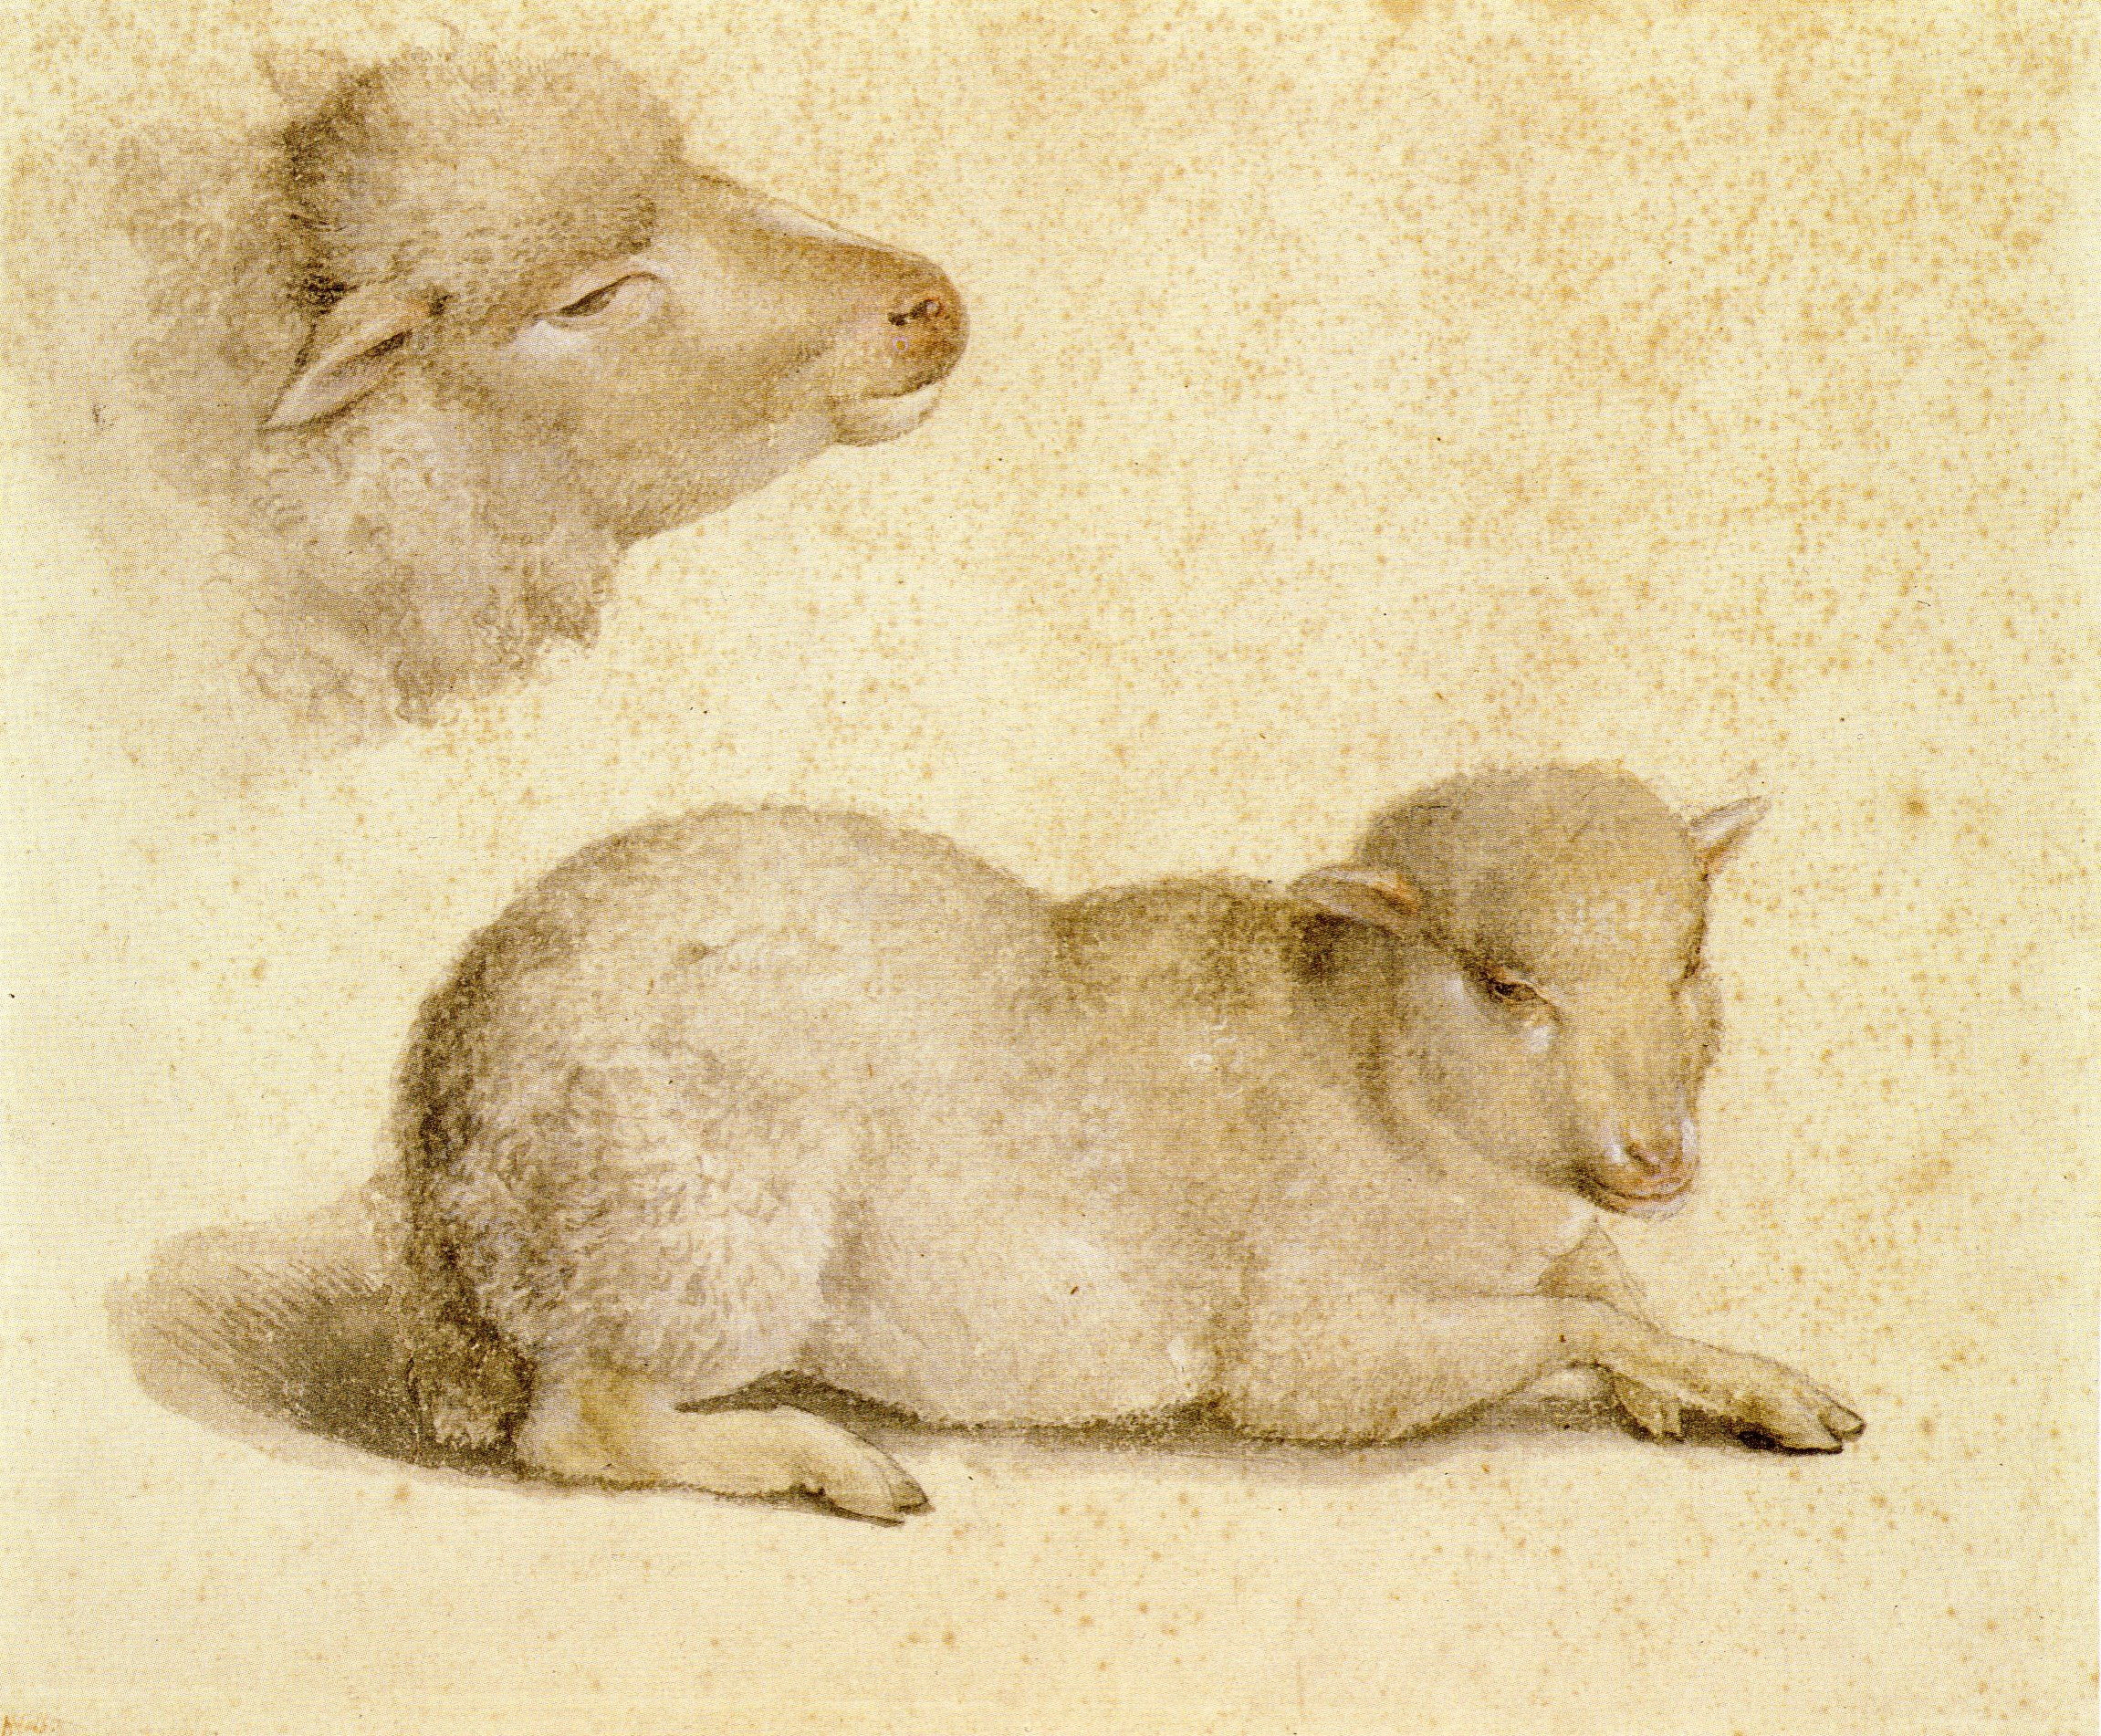 Resting_Lamb_and_Head_of_a_Lamb,_by_Hans_Holbein_the_Younger.jpg